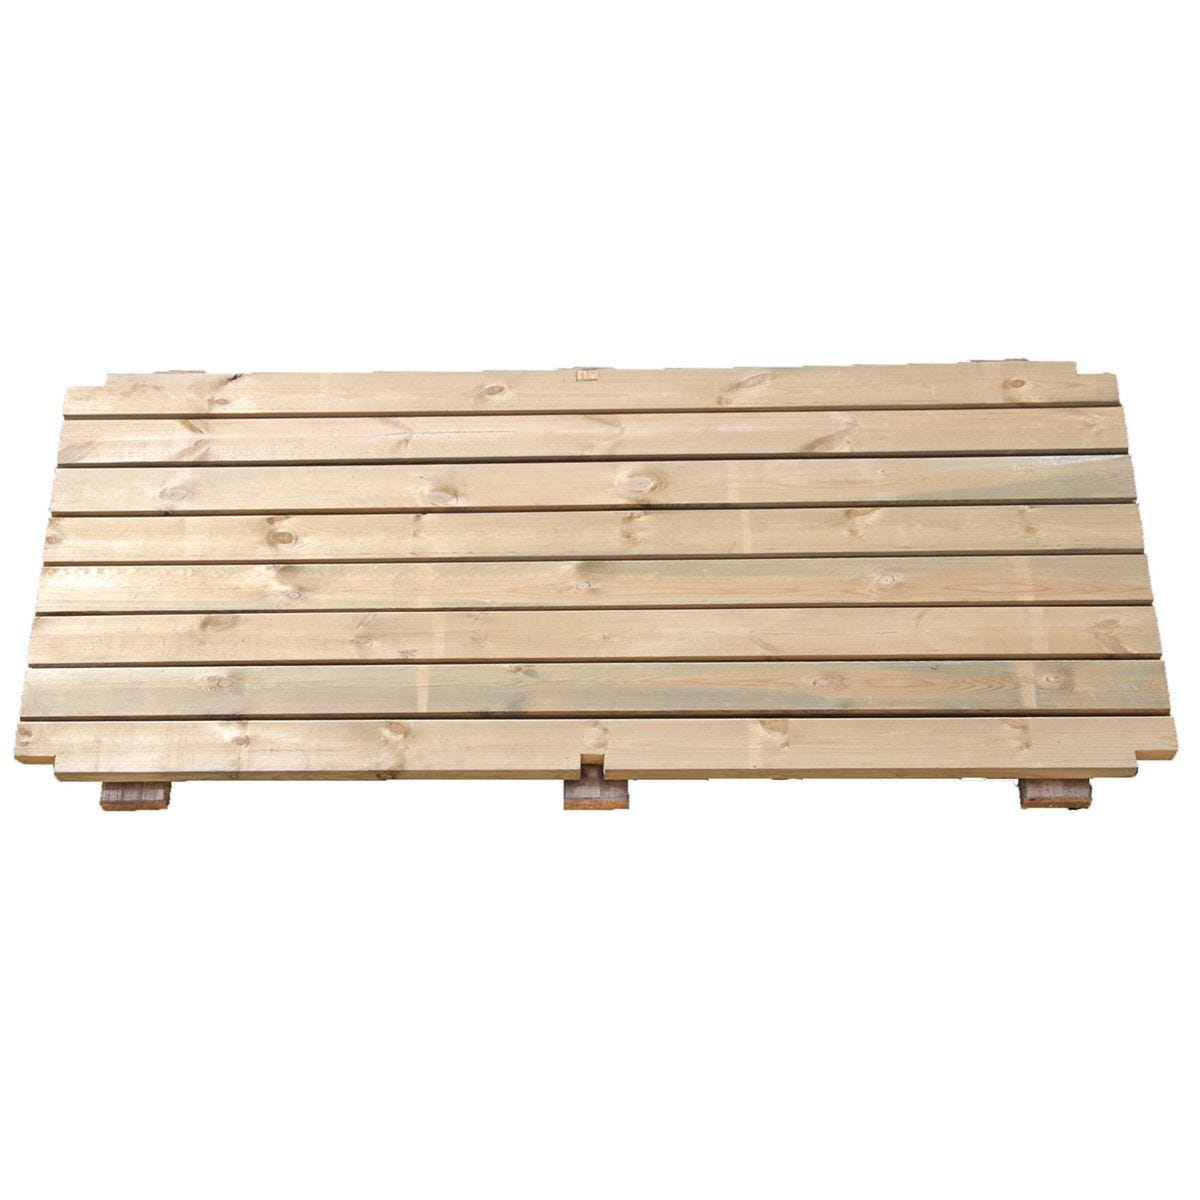 Zest4Leisure Base for Sleeper Raised Bed 1.8 x 0.45 x 0.45